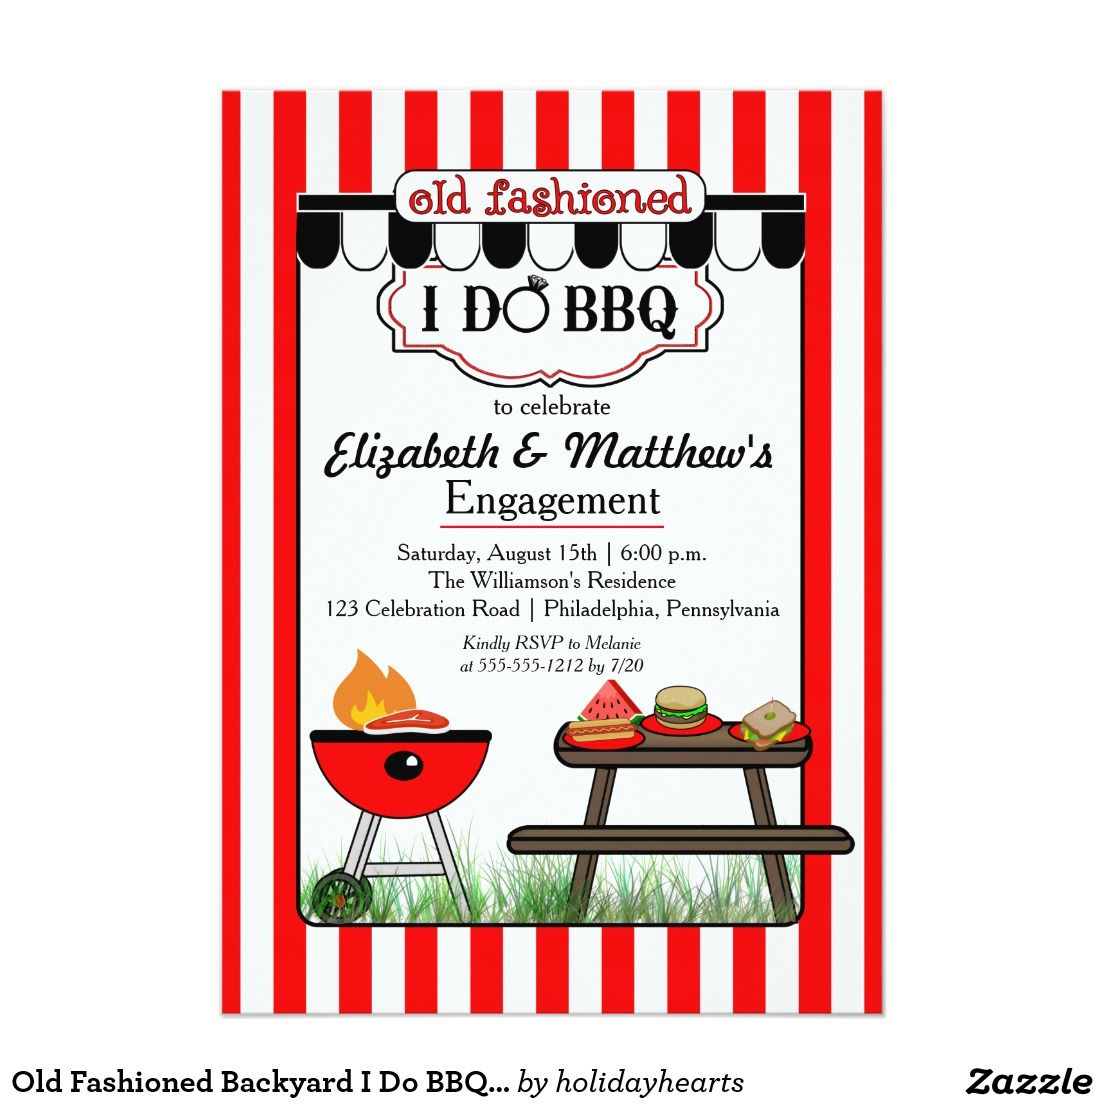 Old Fashioned Backyard I Do BBQ Engagement Party Card